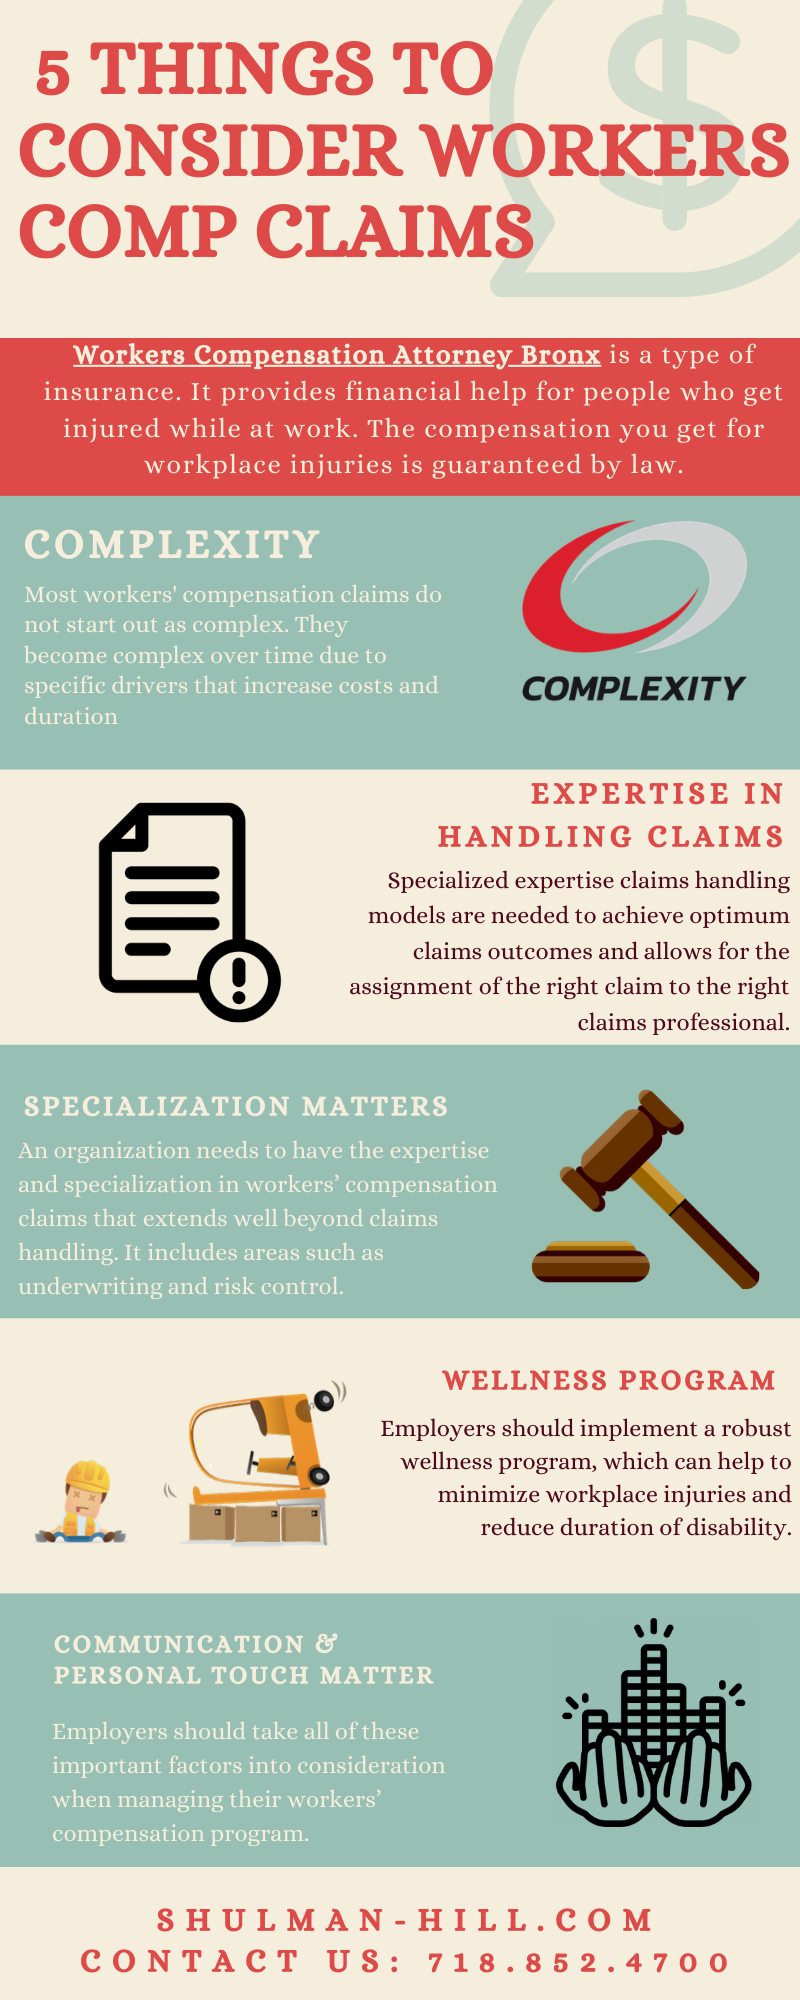 5 Things To Consider Workers Comp Claims in 2020